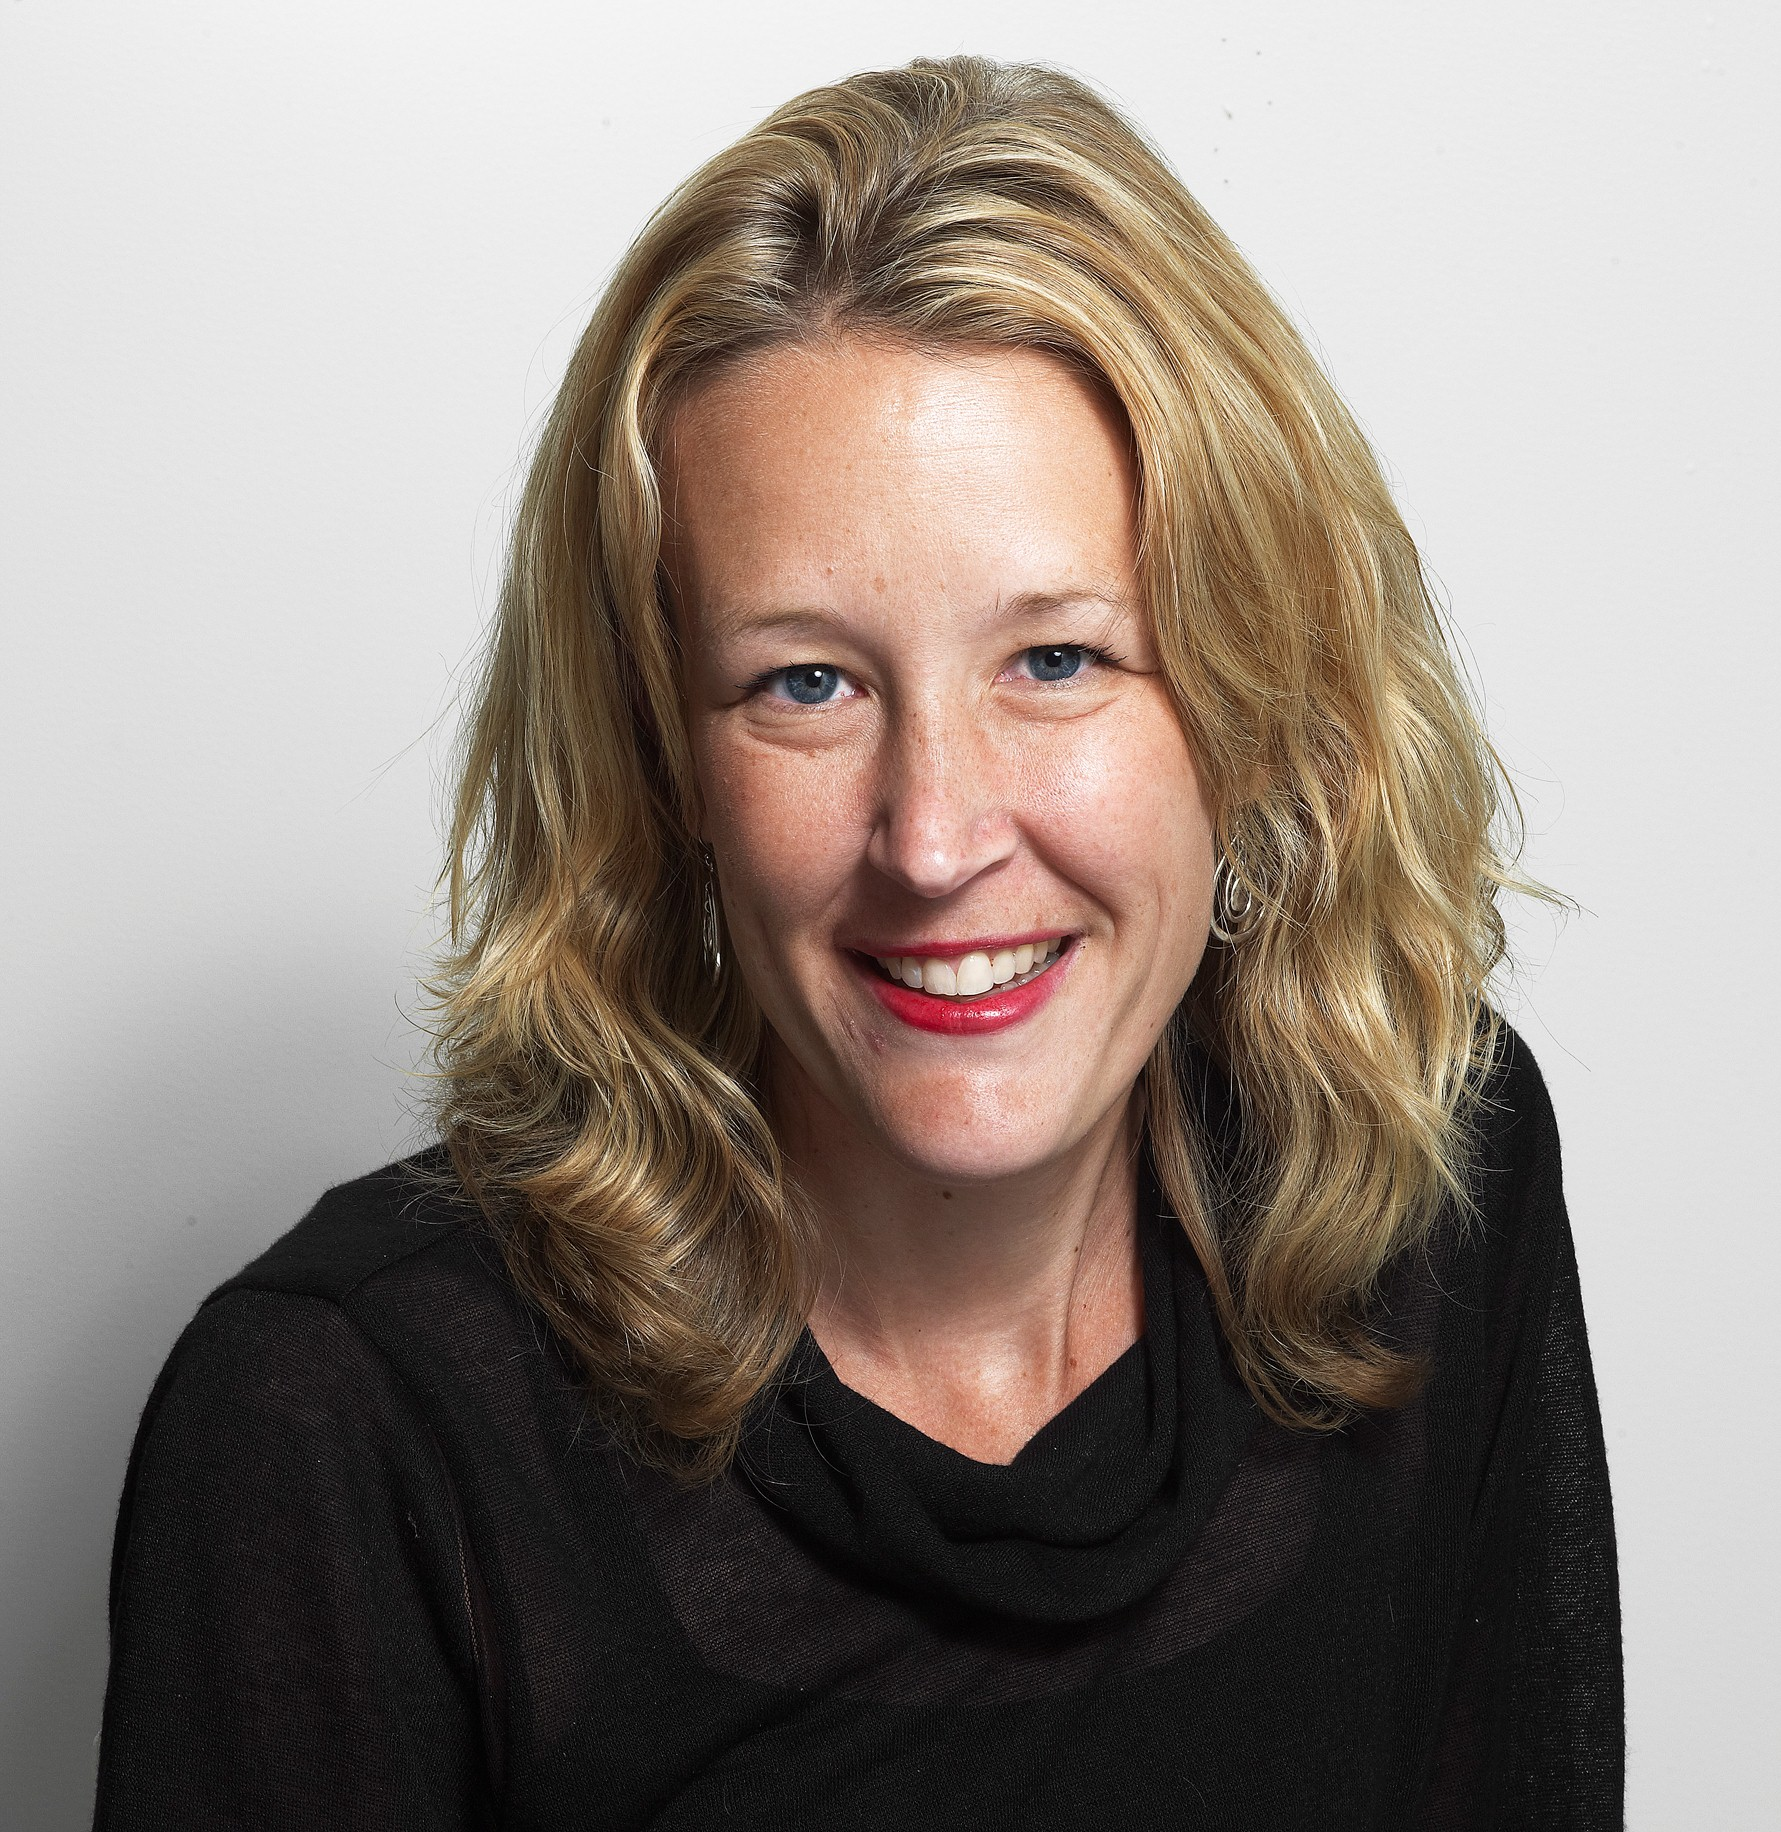 Mary Beth Laughton, senior vice president of e-commerce and digital marketing at Sephora